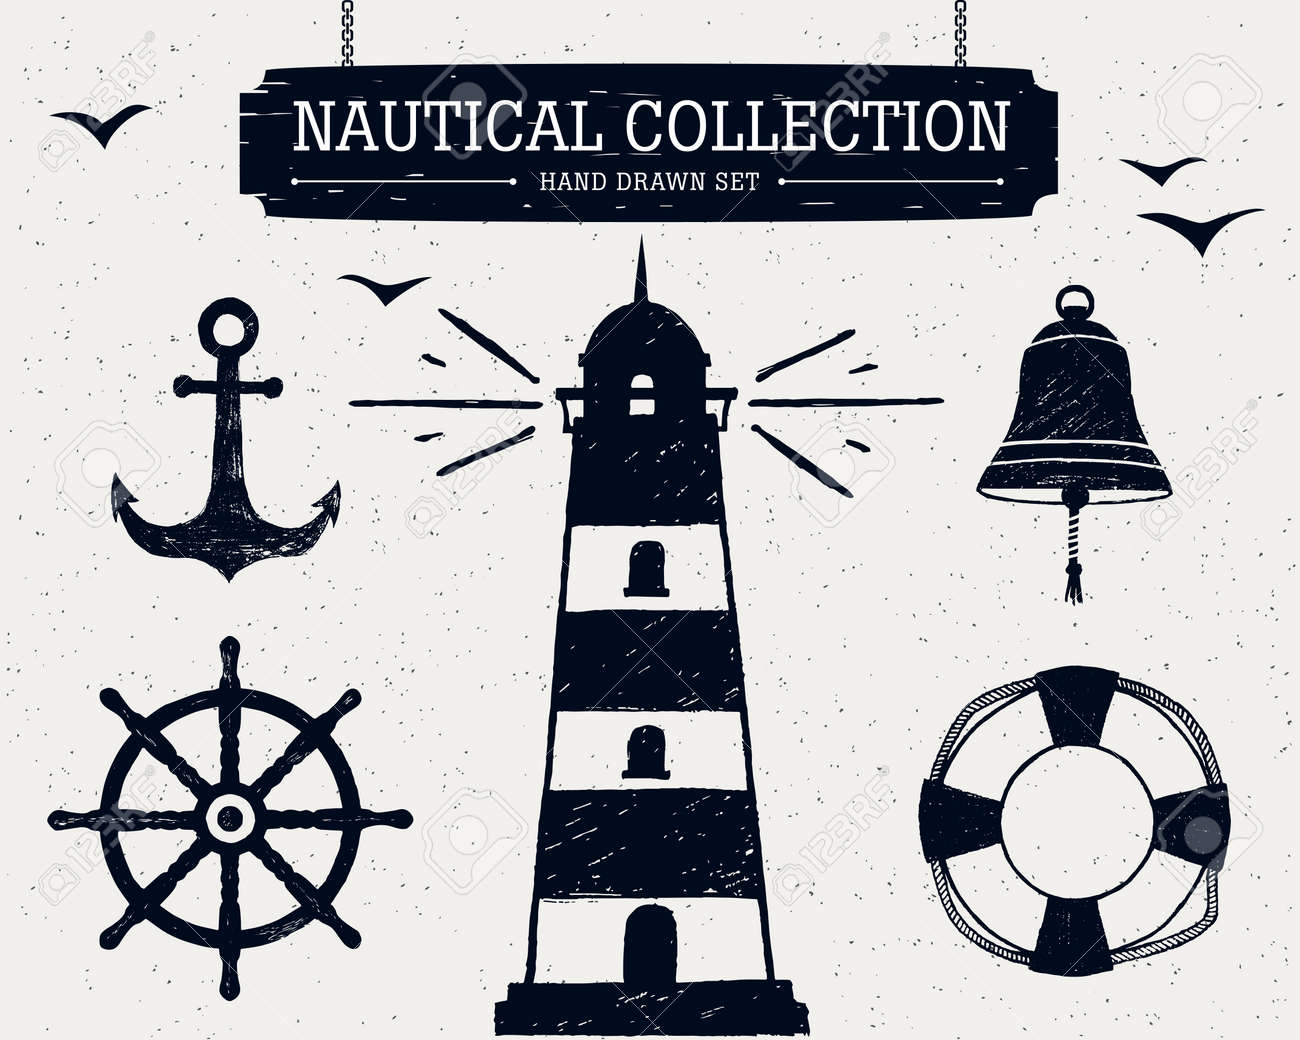 Hand drawn nautical collection of lighthouse, anchor, ship helm, lifebuoy, bell. - 53286319